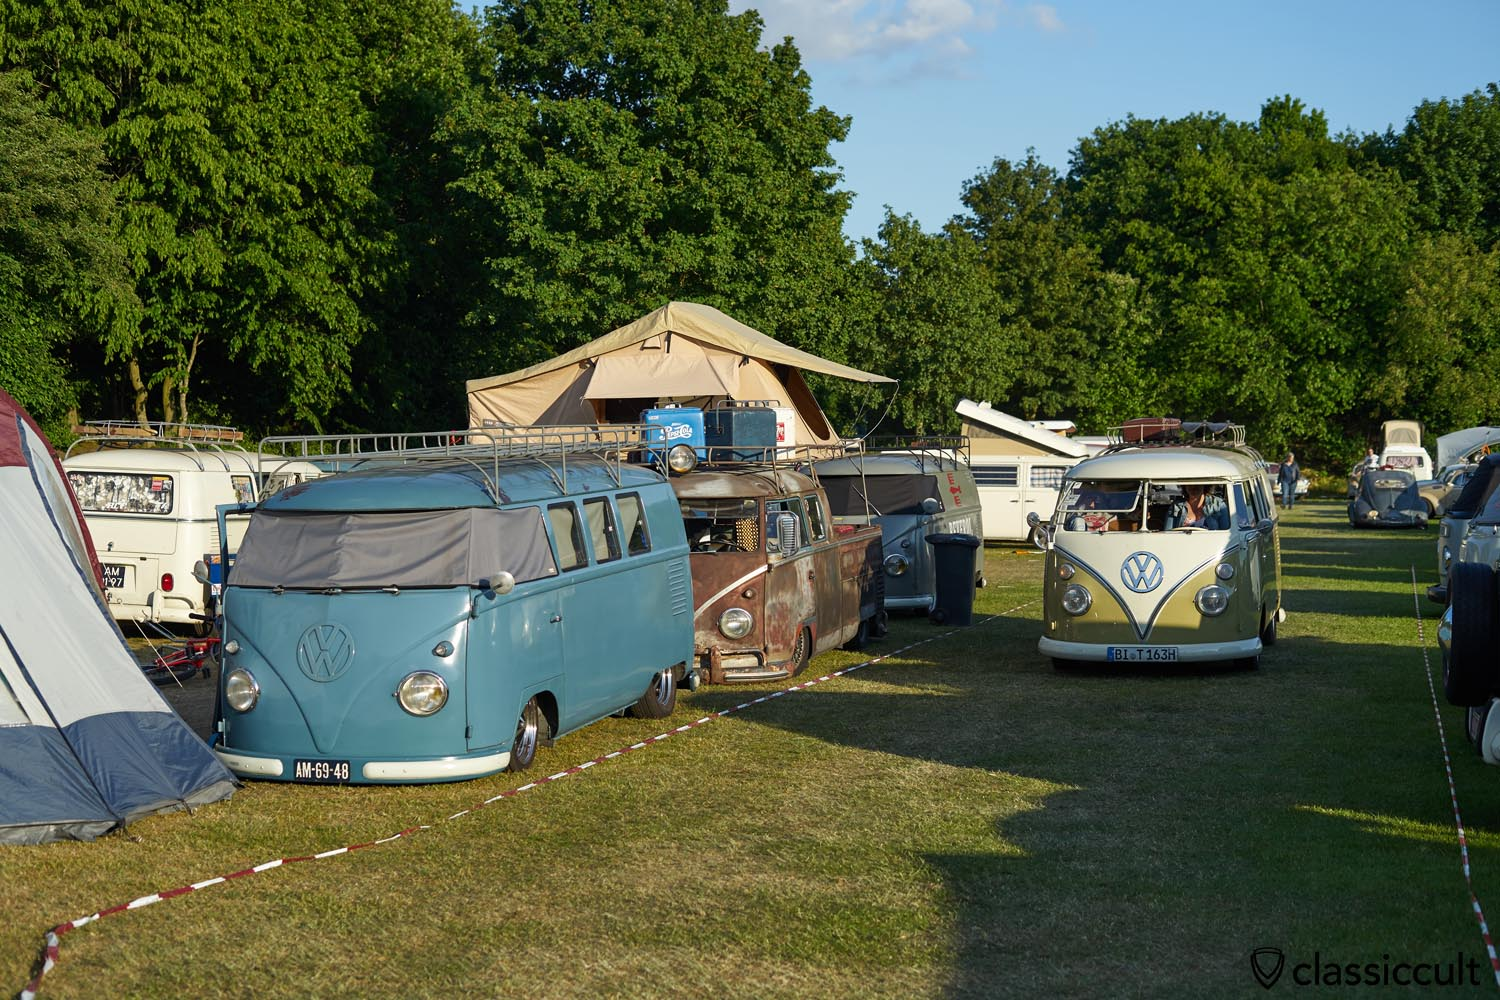 VW T1 Camping Platz 1, Geeste Aircooled Meeting